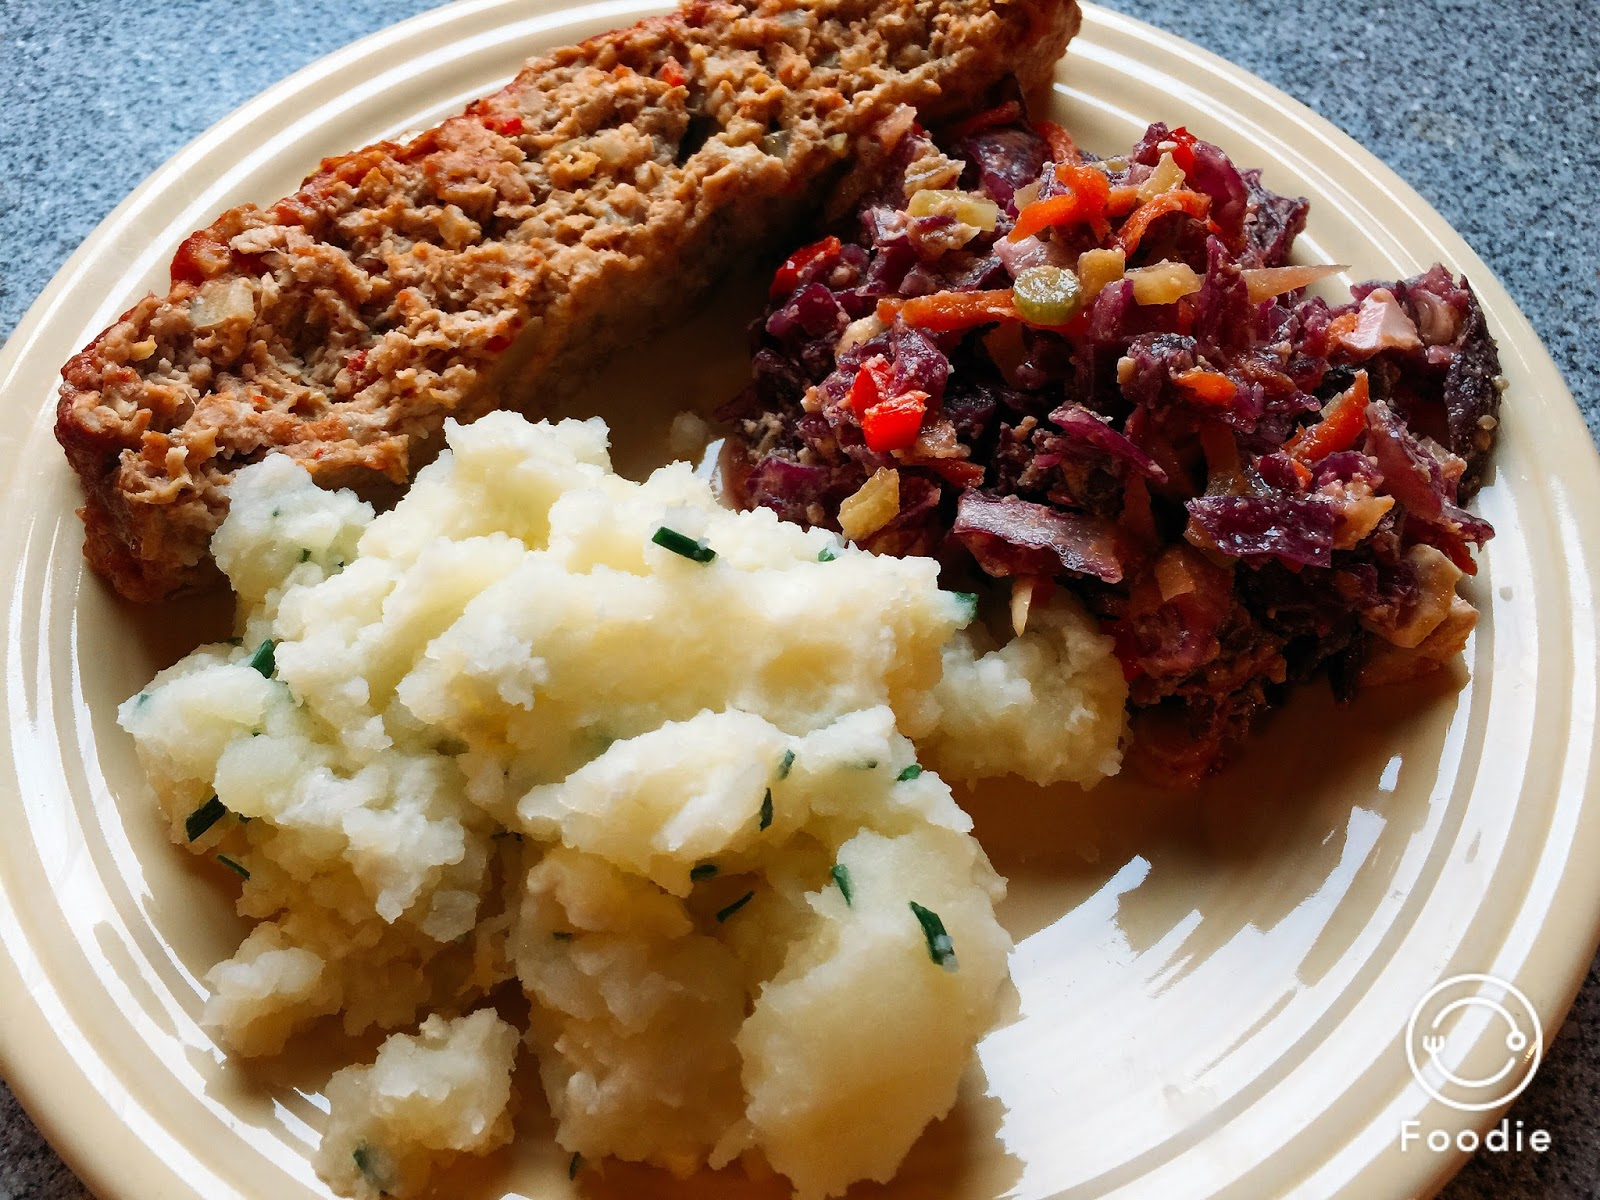 ... From Alice's Kitchen: Smashed Potatoes with Sour Cream and Chives